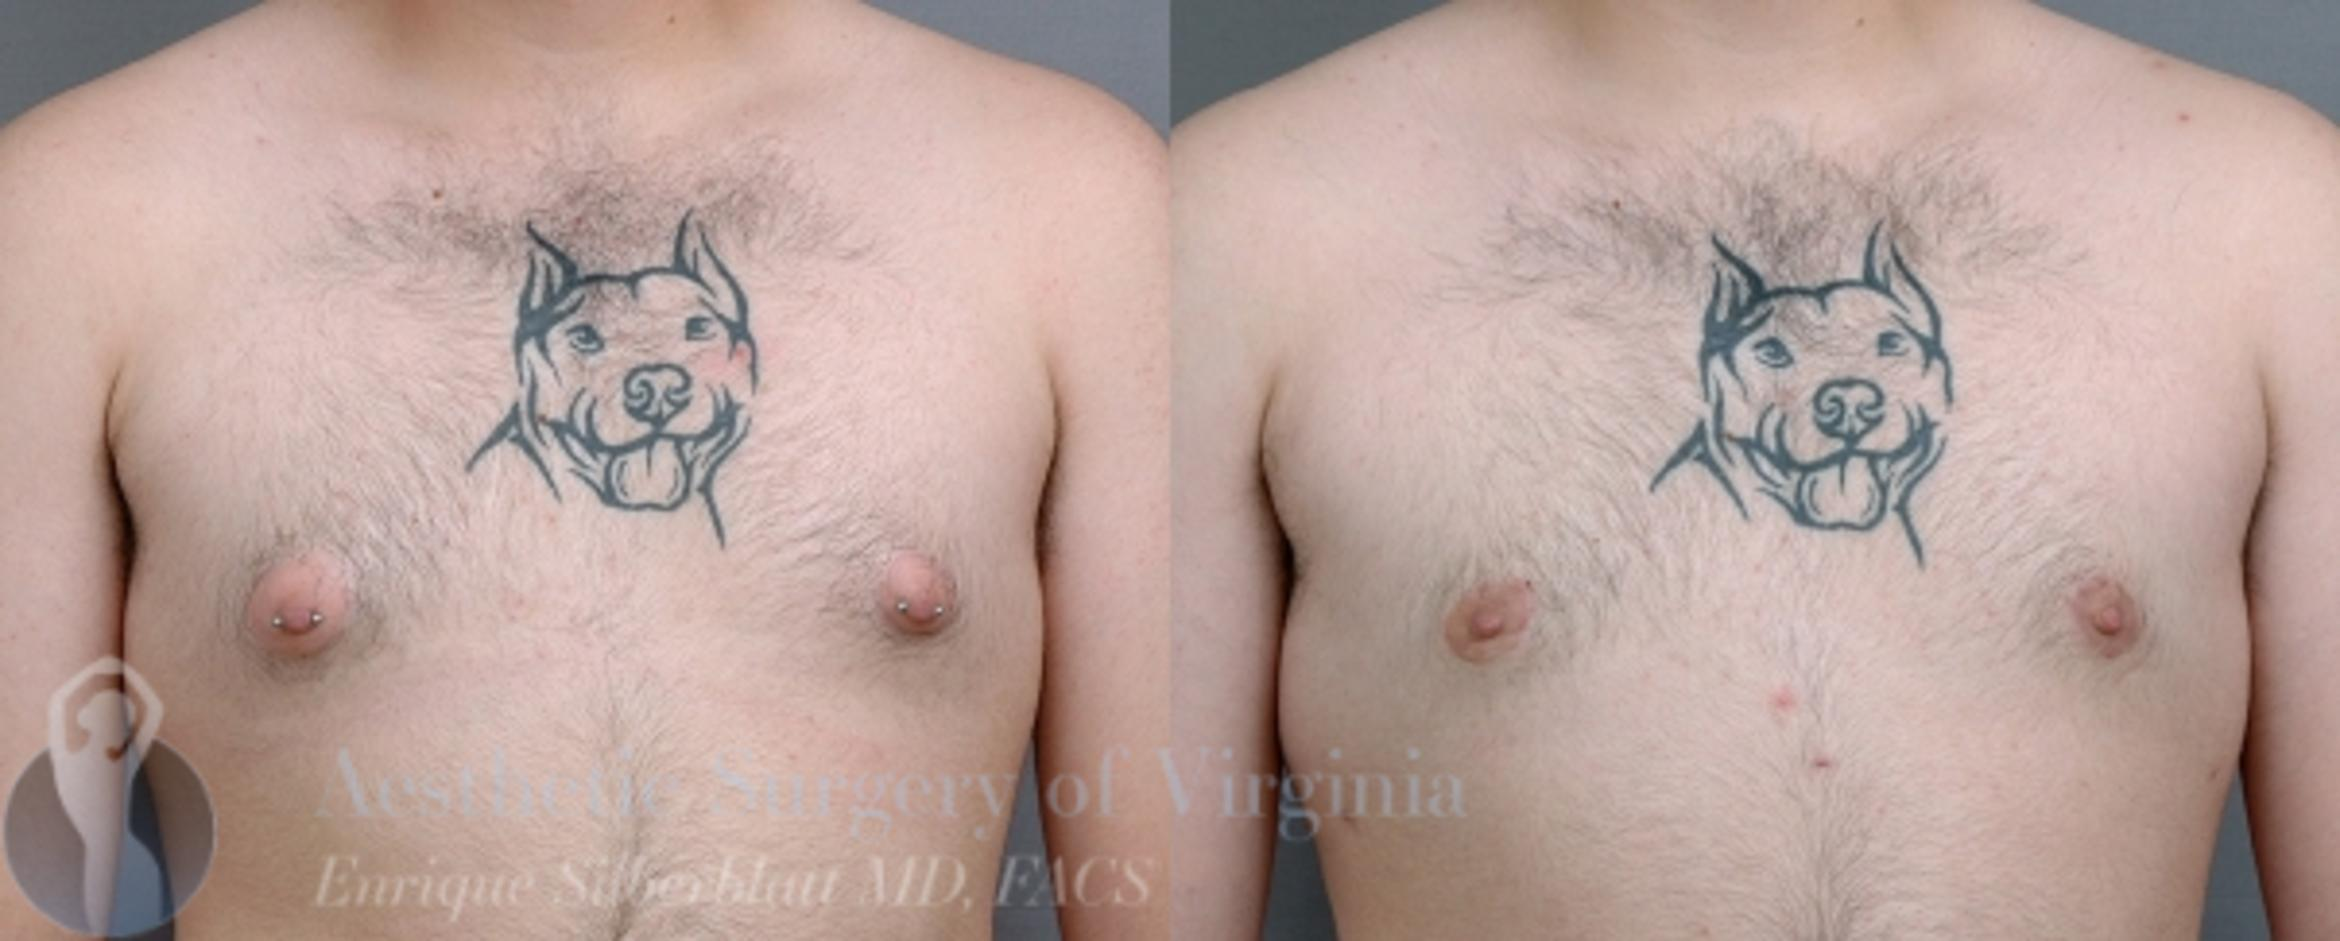 Male Breast Reduction (Gynecomastia) Case 24 Before & After View #1 | Roanoke, VA | Aesthetic Surgery of Virginia: Enrique Silberblatt, MD